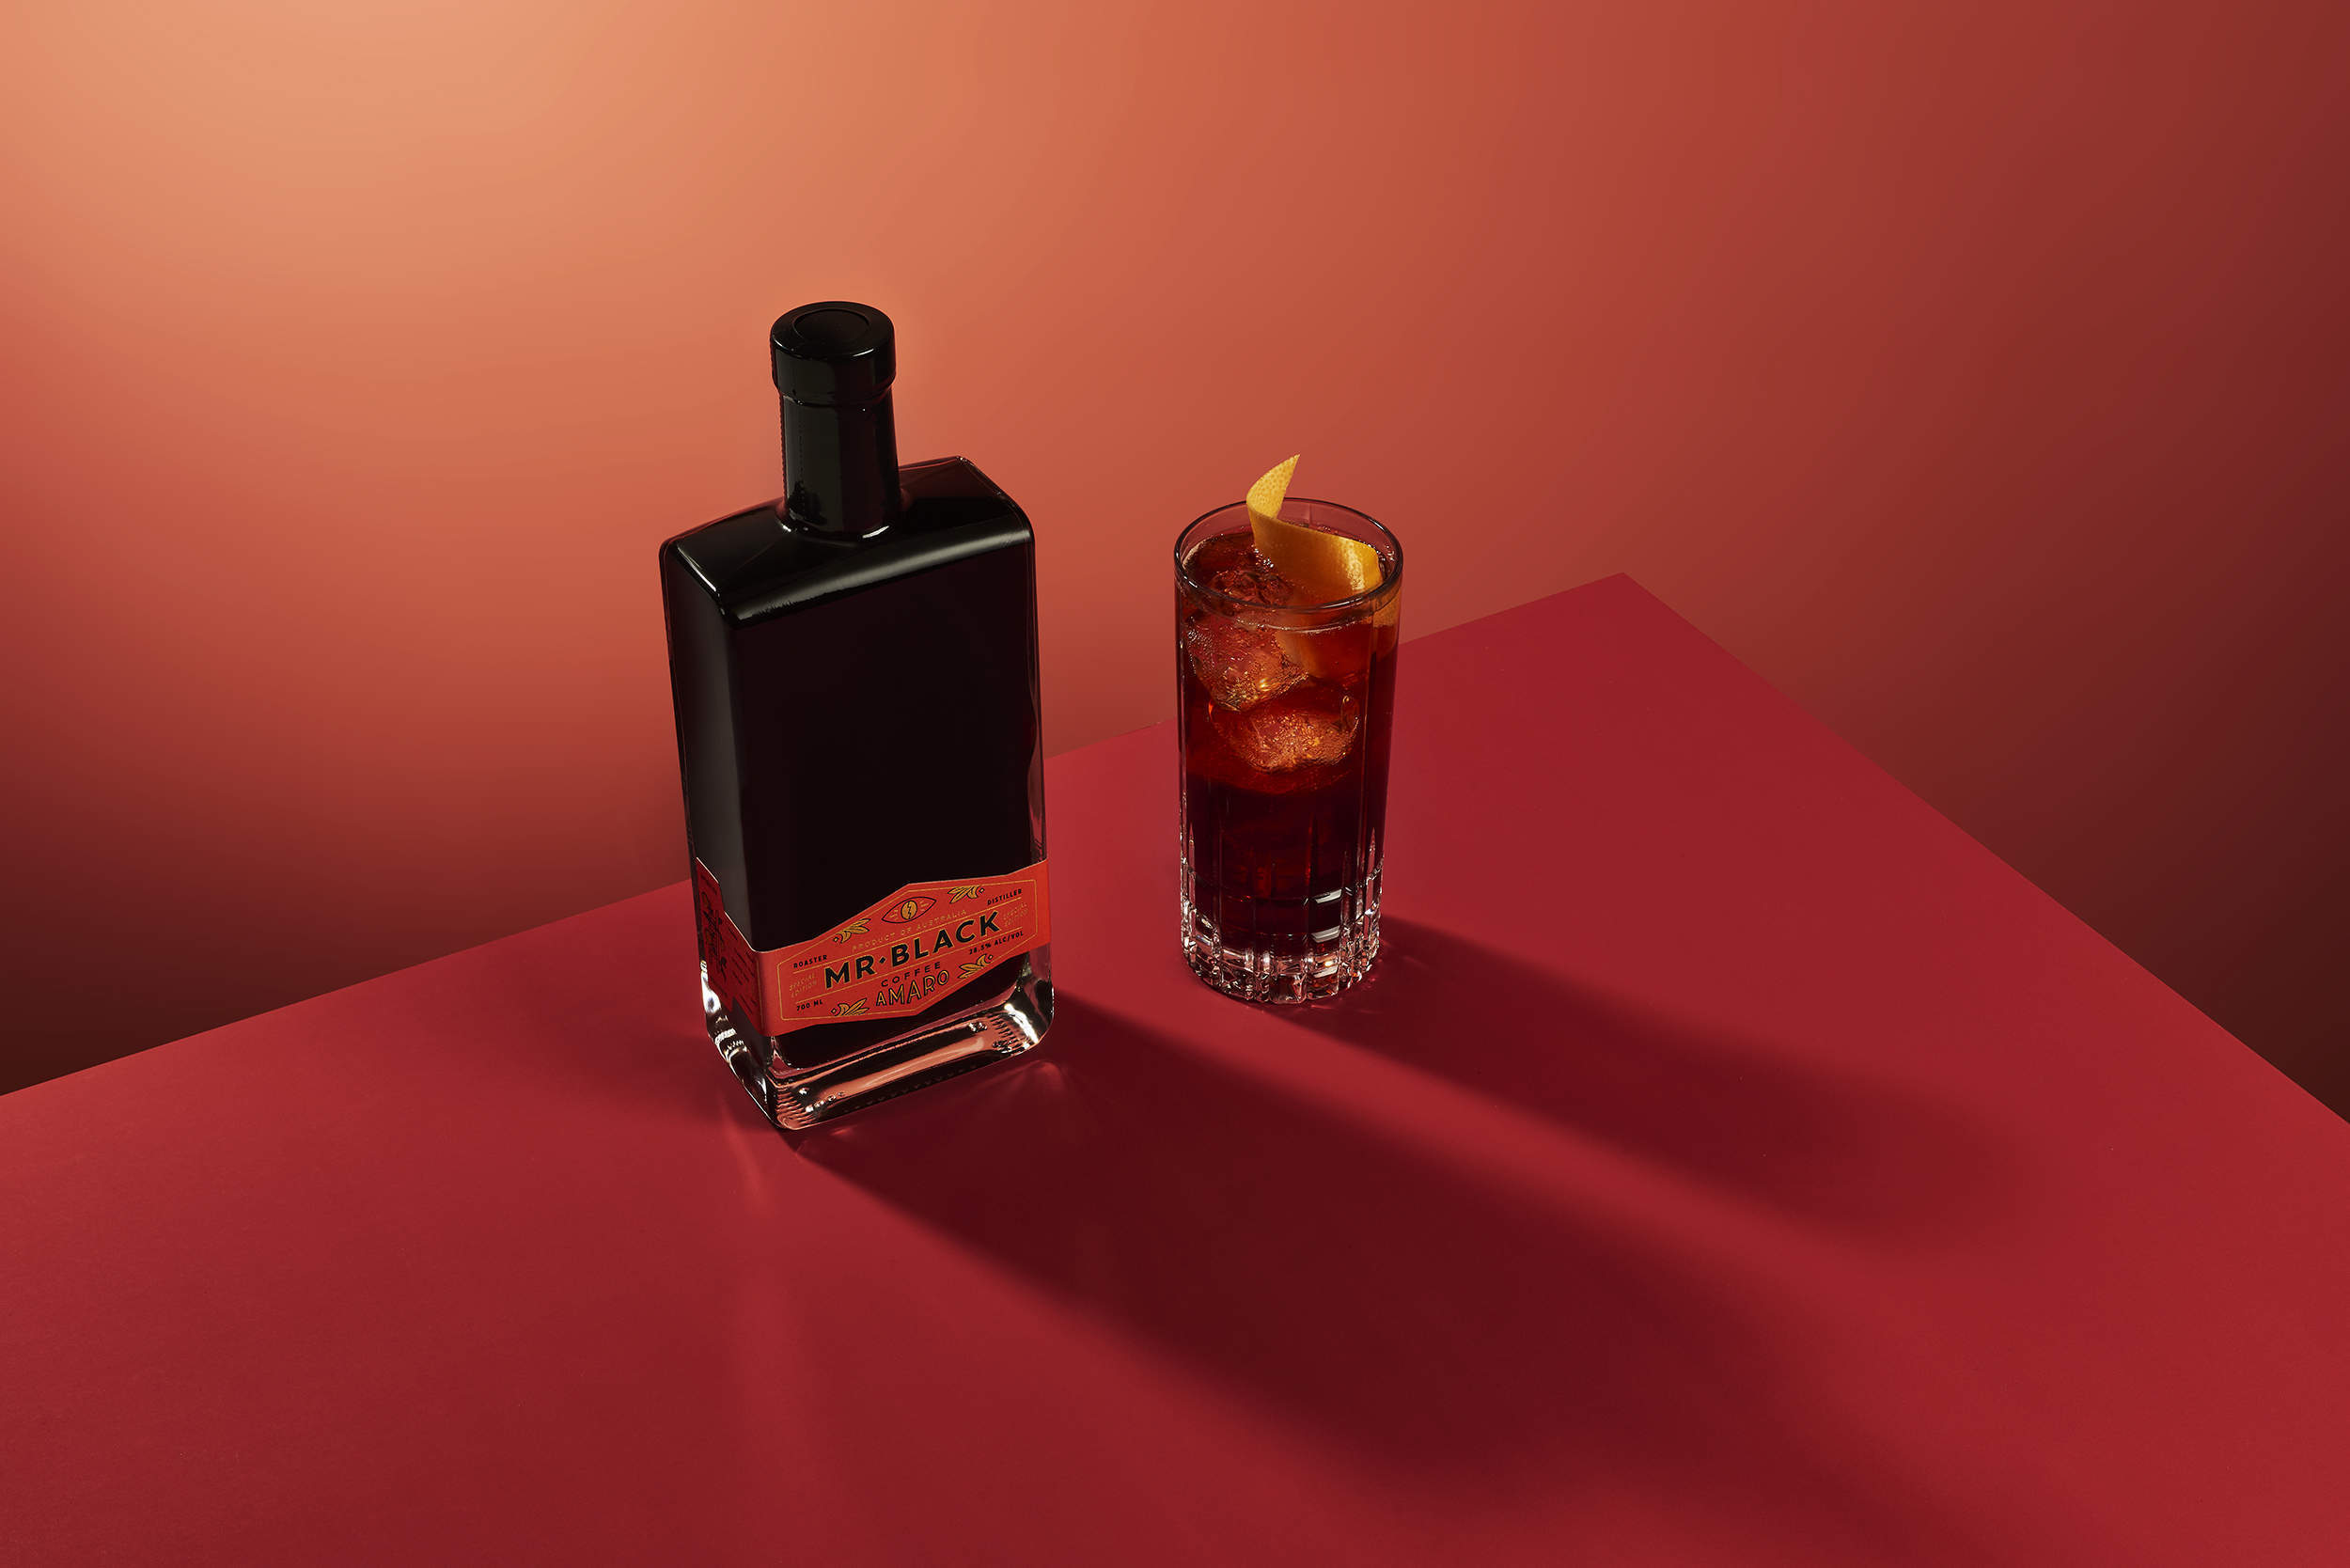 This new luxury coffee liqueur is a must-drink for caffeine lovers